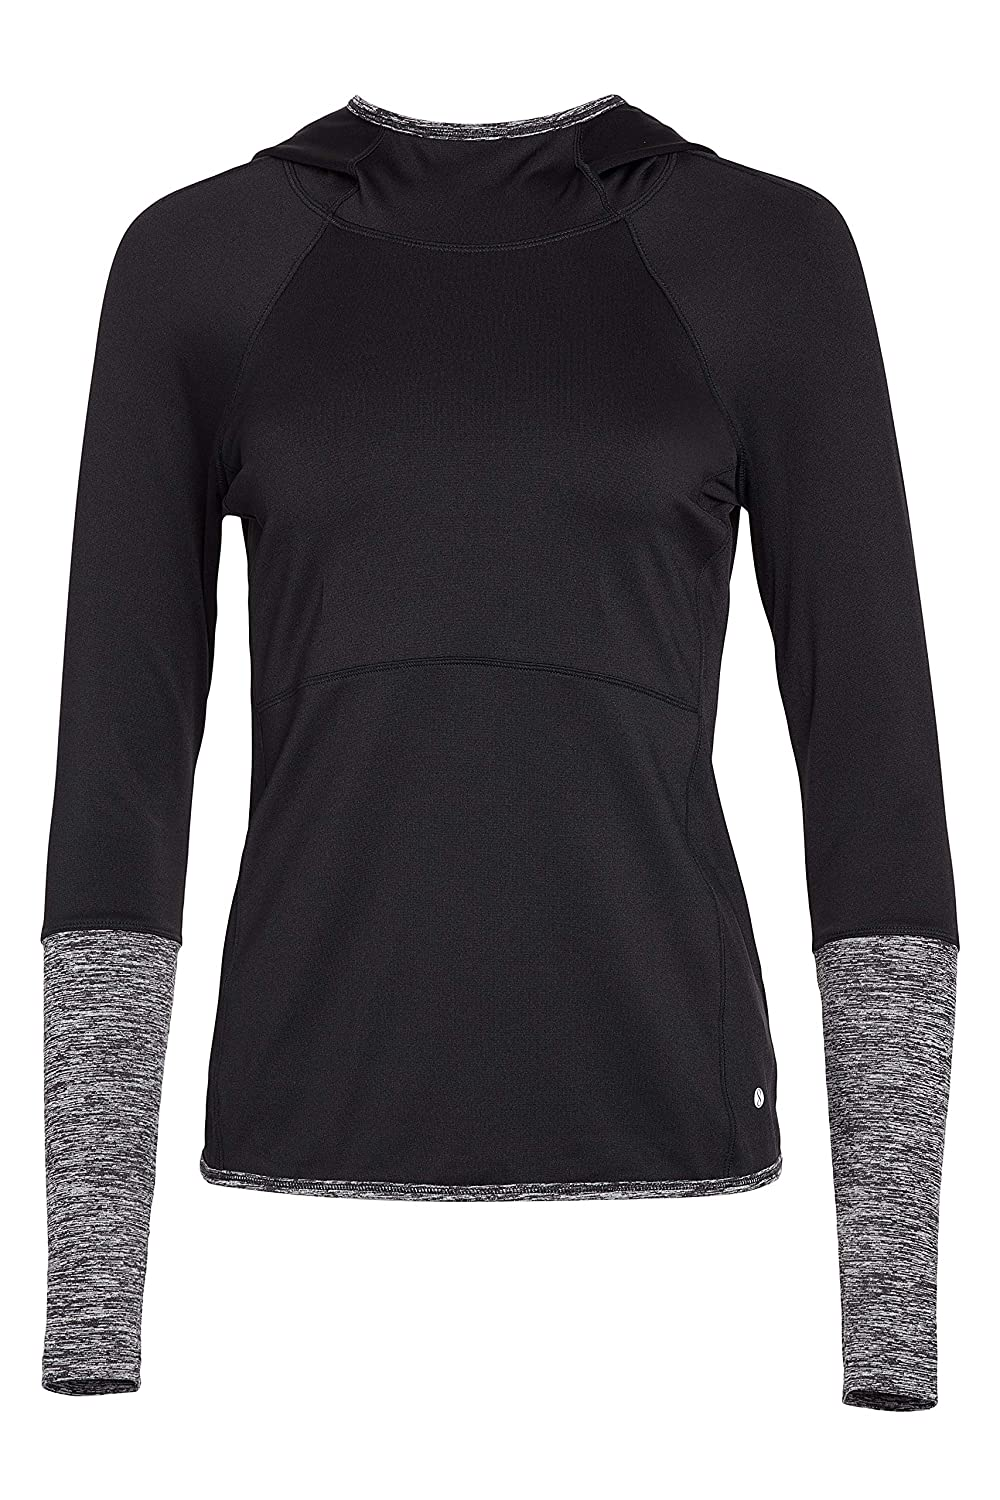 Black Soot Layer 8 Ladies Long Sleeve Hooded Top with Side Pulls